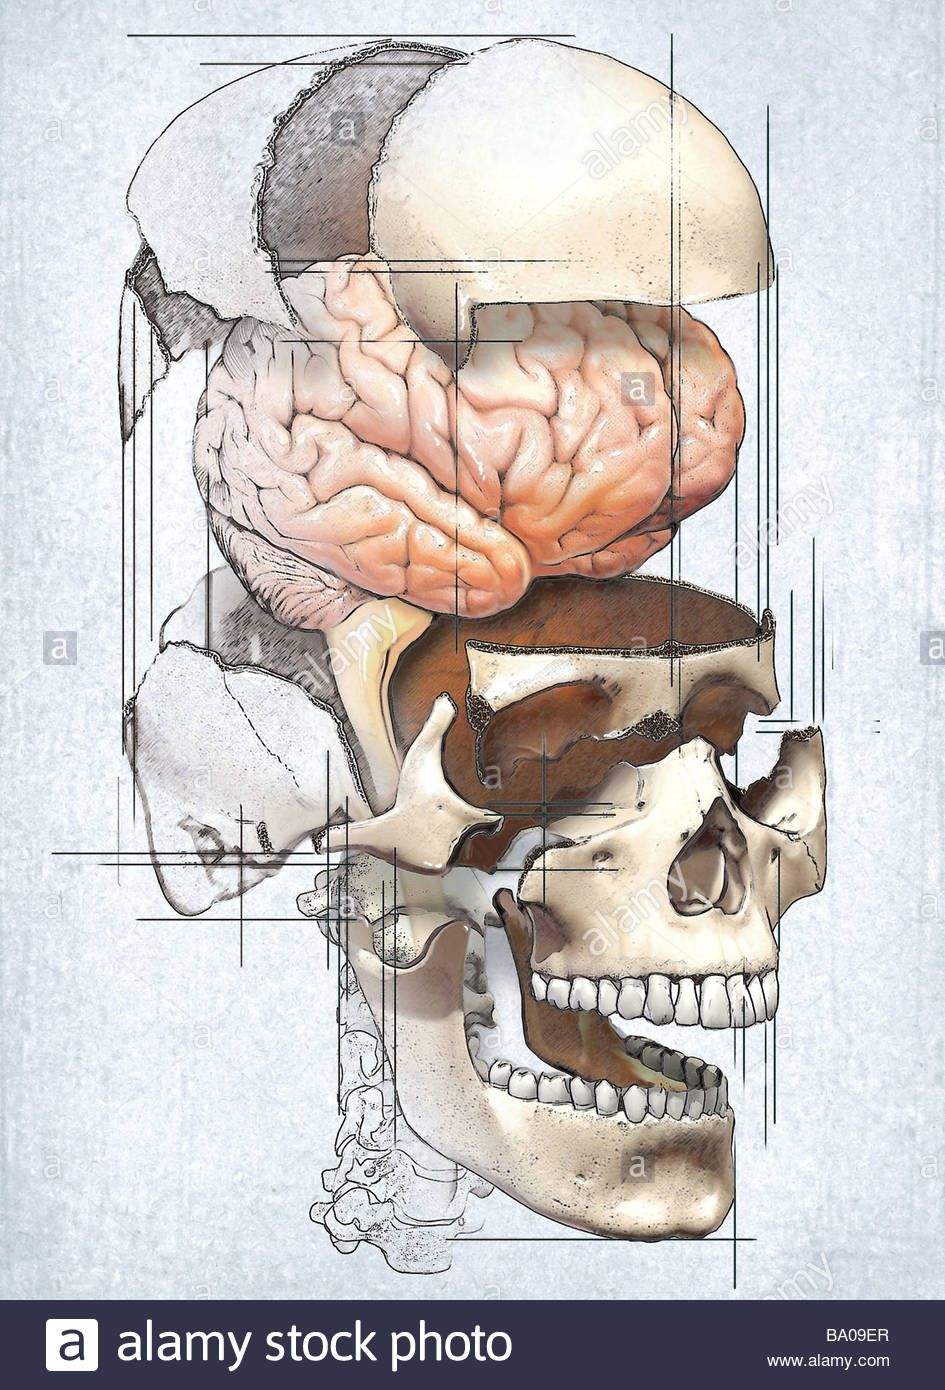 this-medical-image-depicts-an-exploded-view-of-the-skull-with-the ...